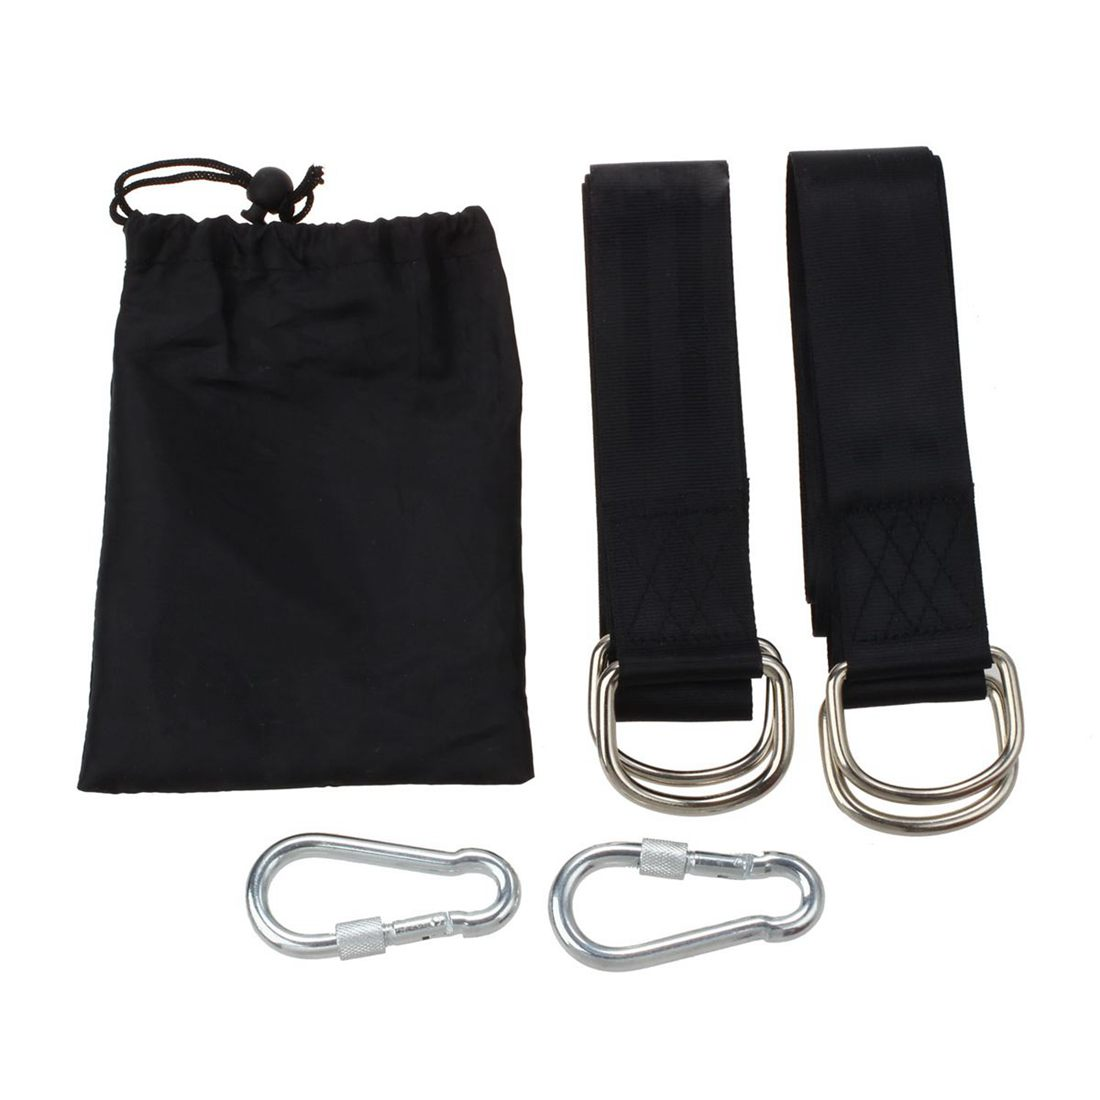 Tree Swing Hanging Kit, Two 59 inch Tree Straps with Safer Lock Snap Carabiner Hooks, Perfect for Tree Swing & Hammocks & Disc tree